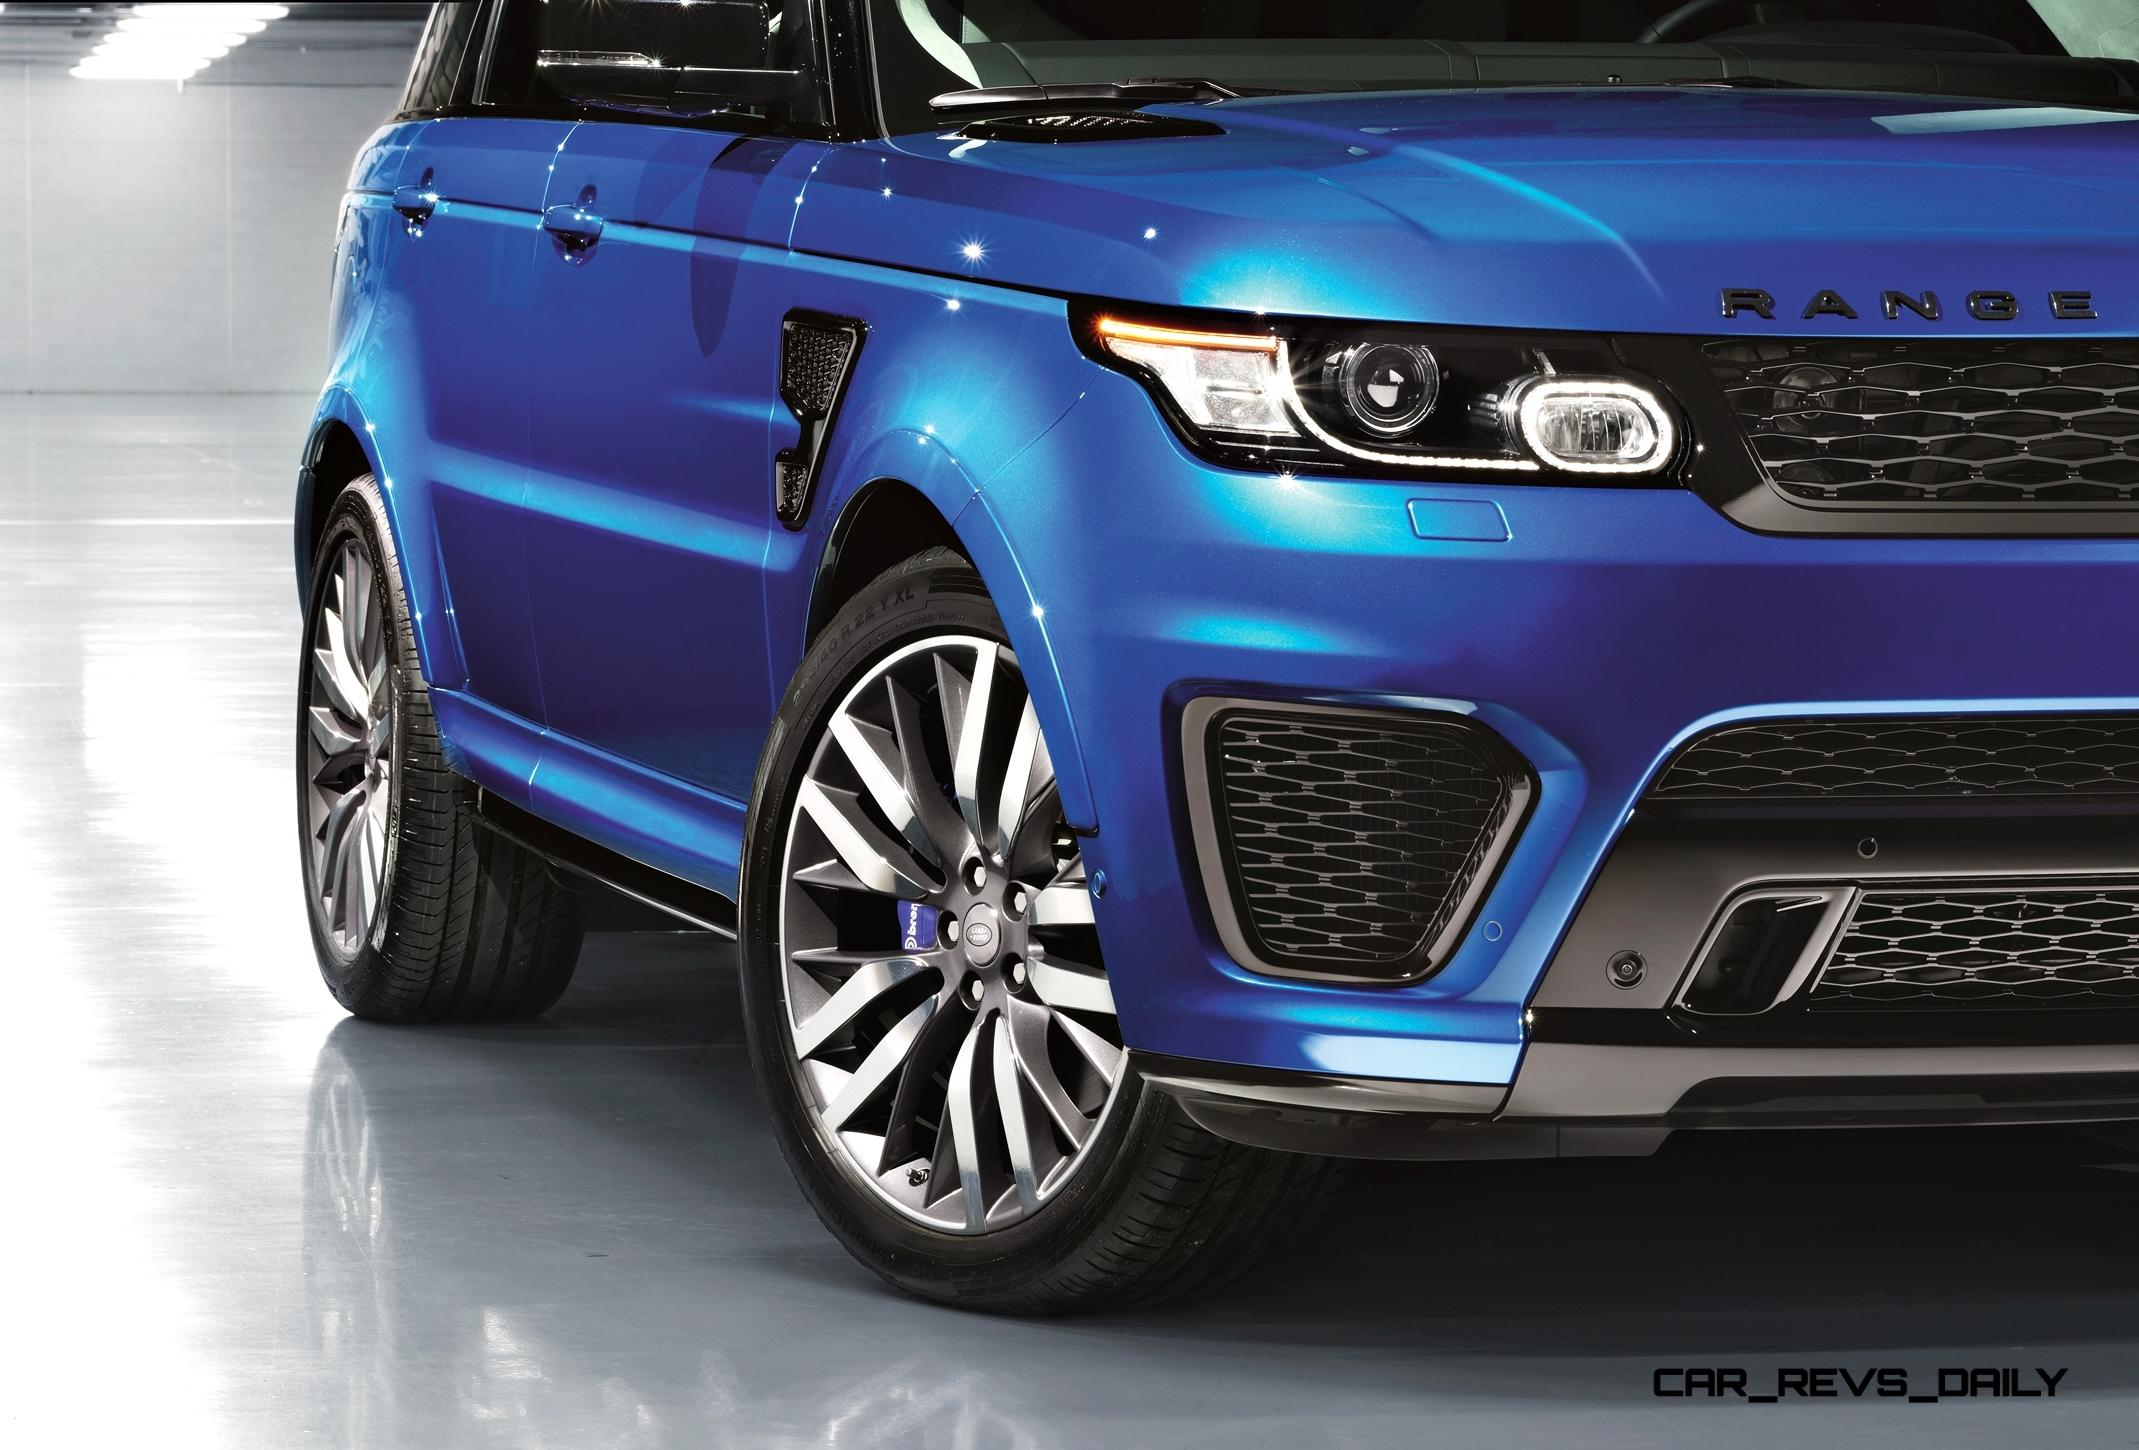 162mph 2015 range rover sport svr is officially quickest fastest and raciest rrs ever. Black Bedroom Furniture Sets. Home Design Ideas